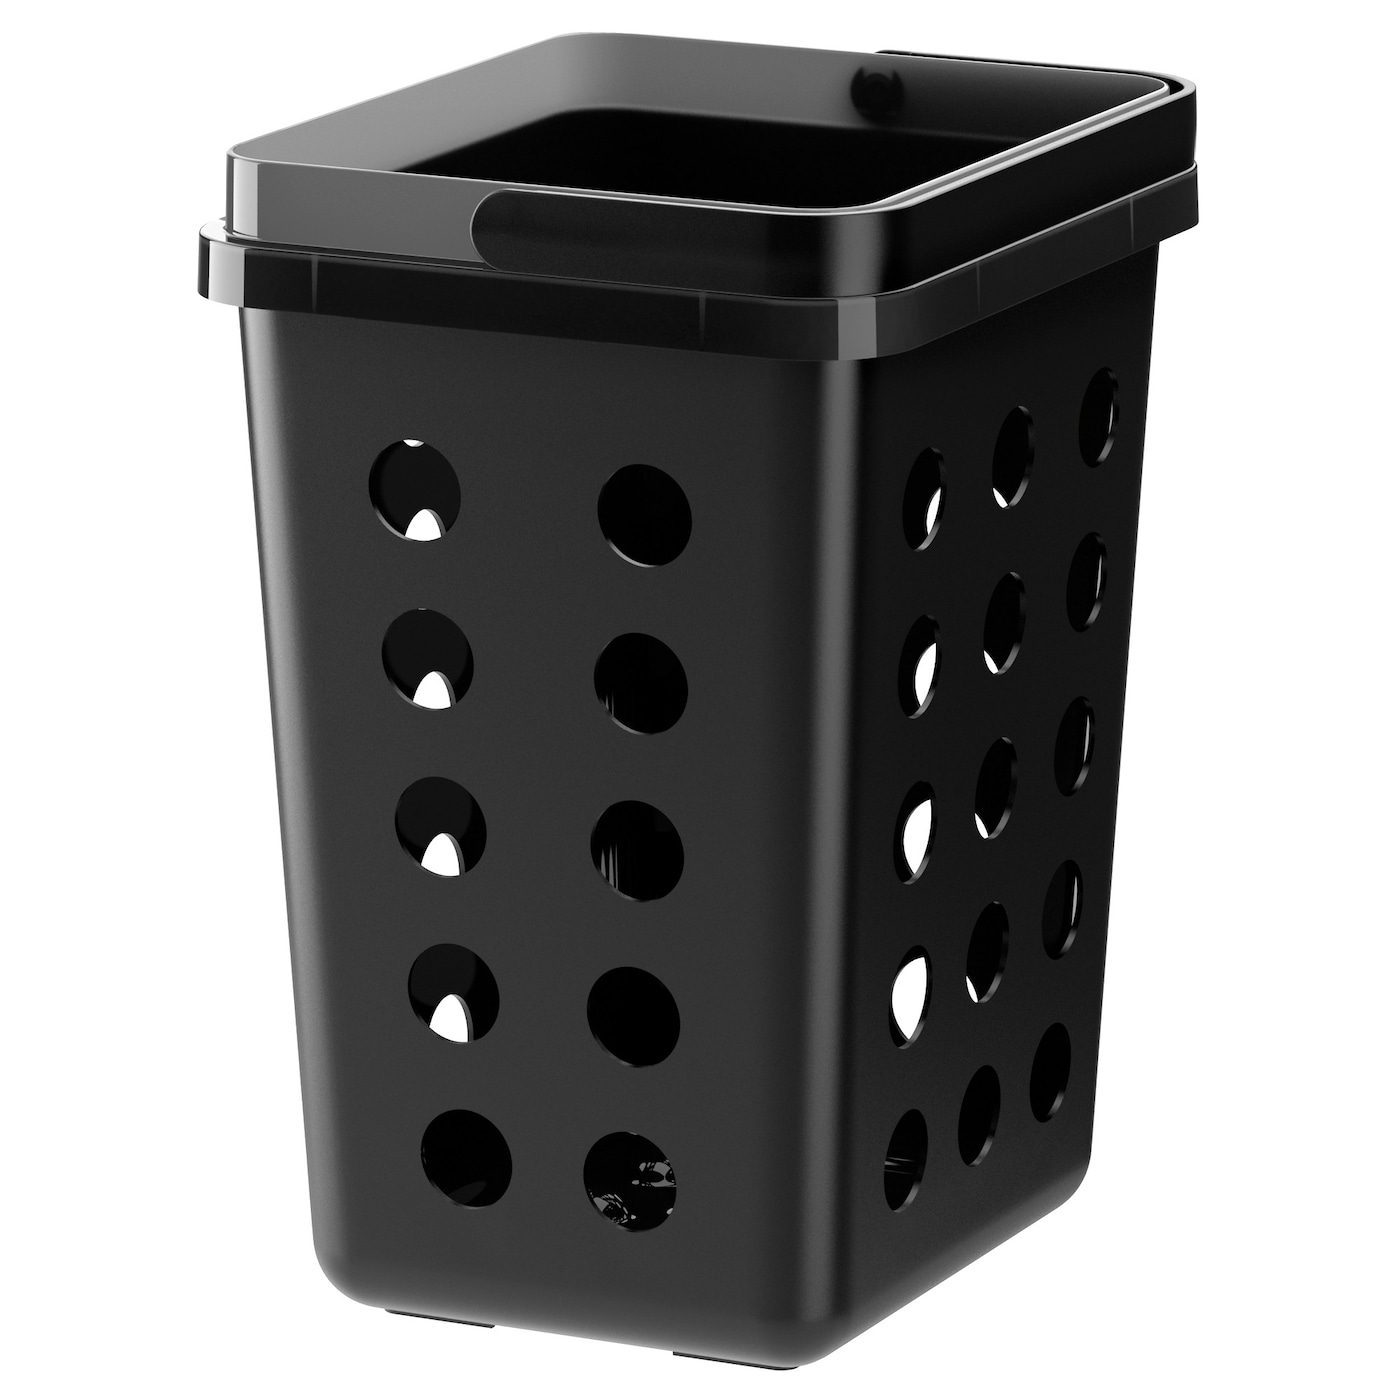 IKEA VARIERA ventilated waste sorting bin Rounded corners for easy cleaning.